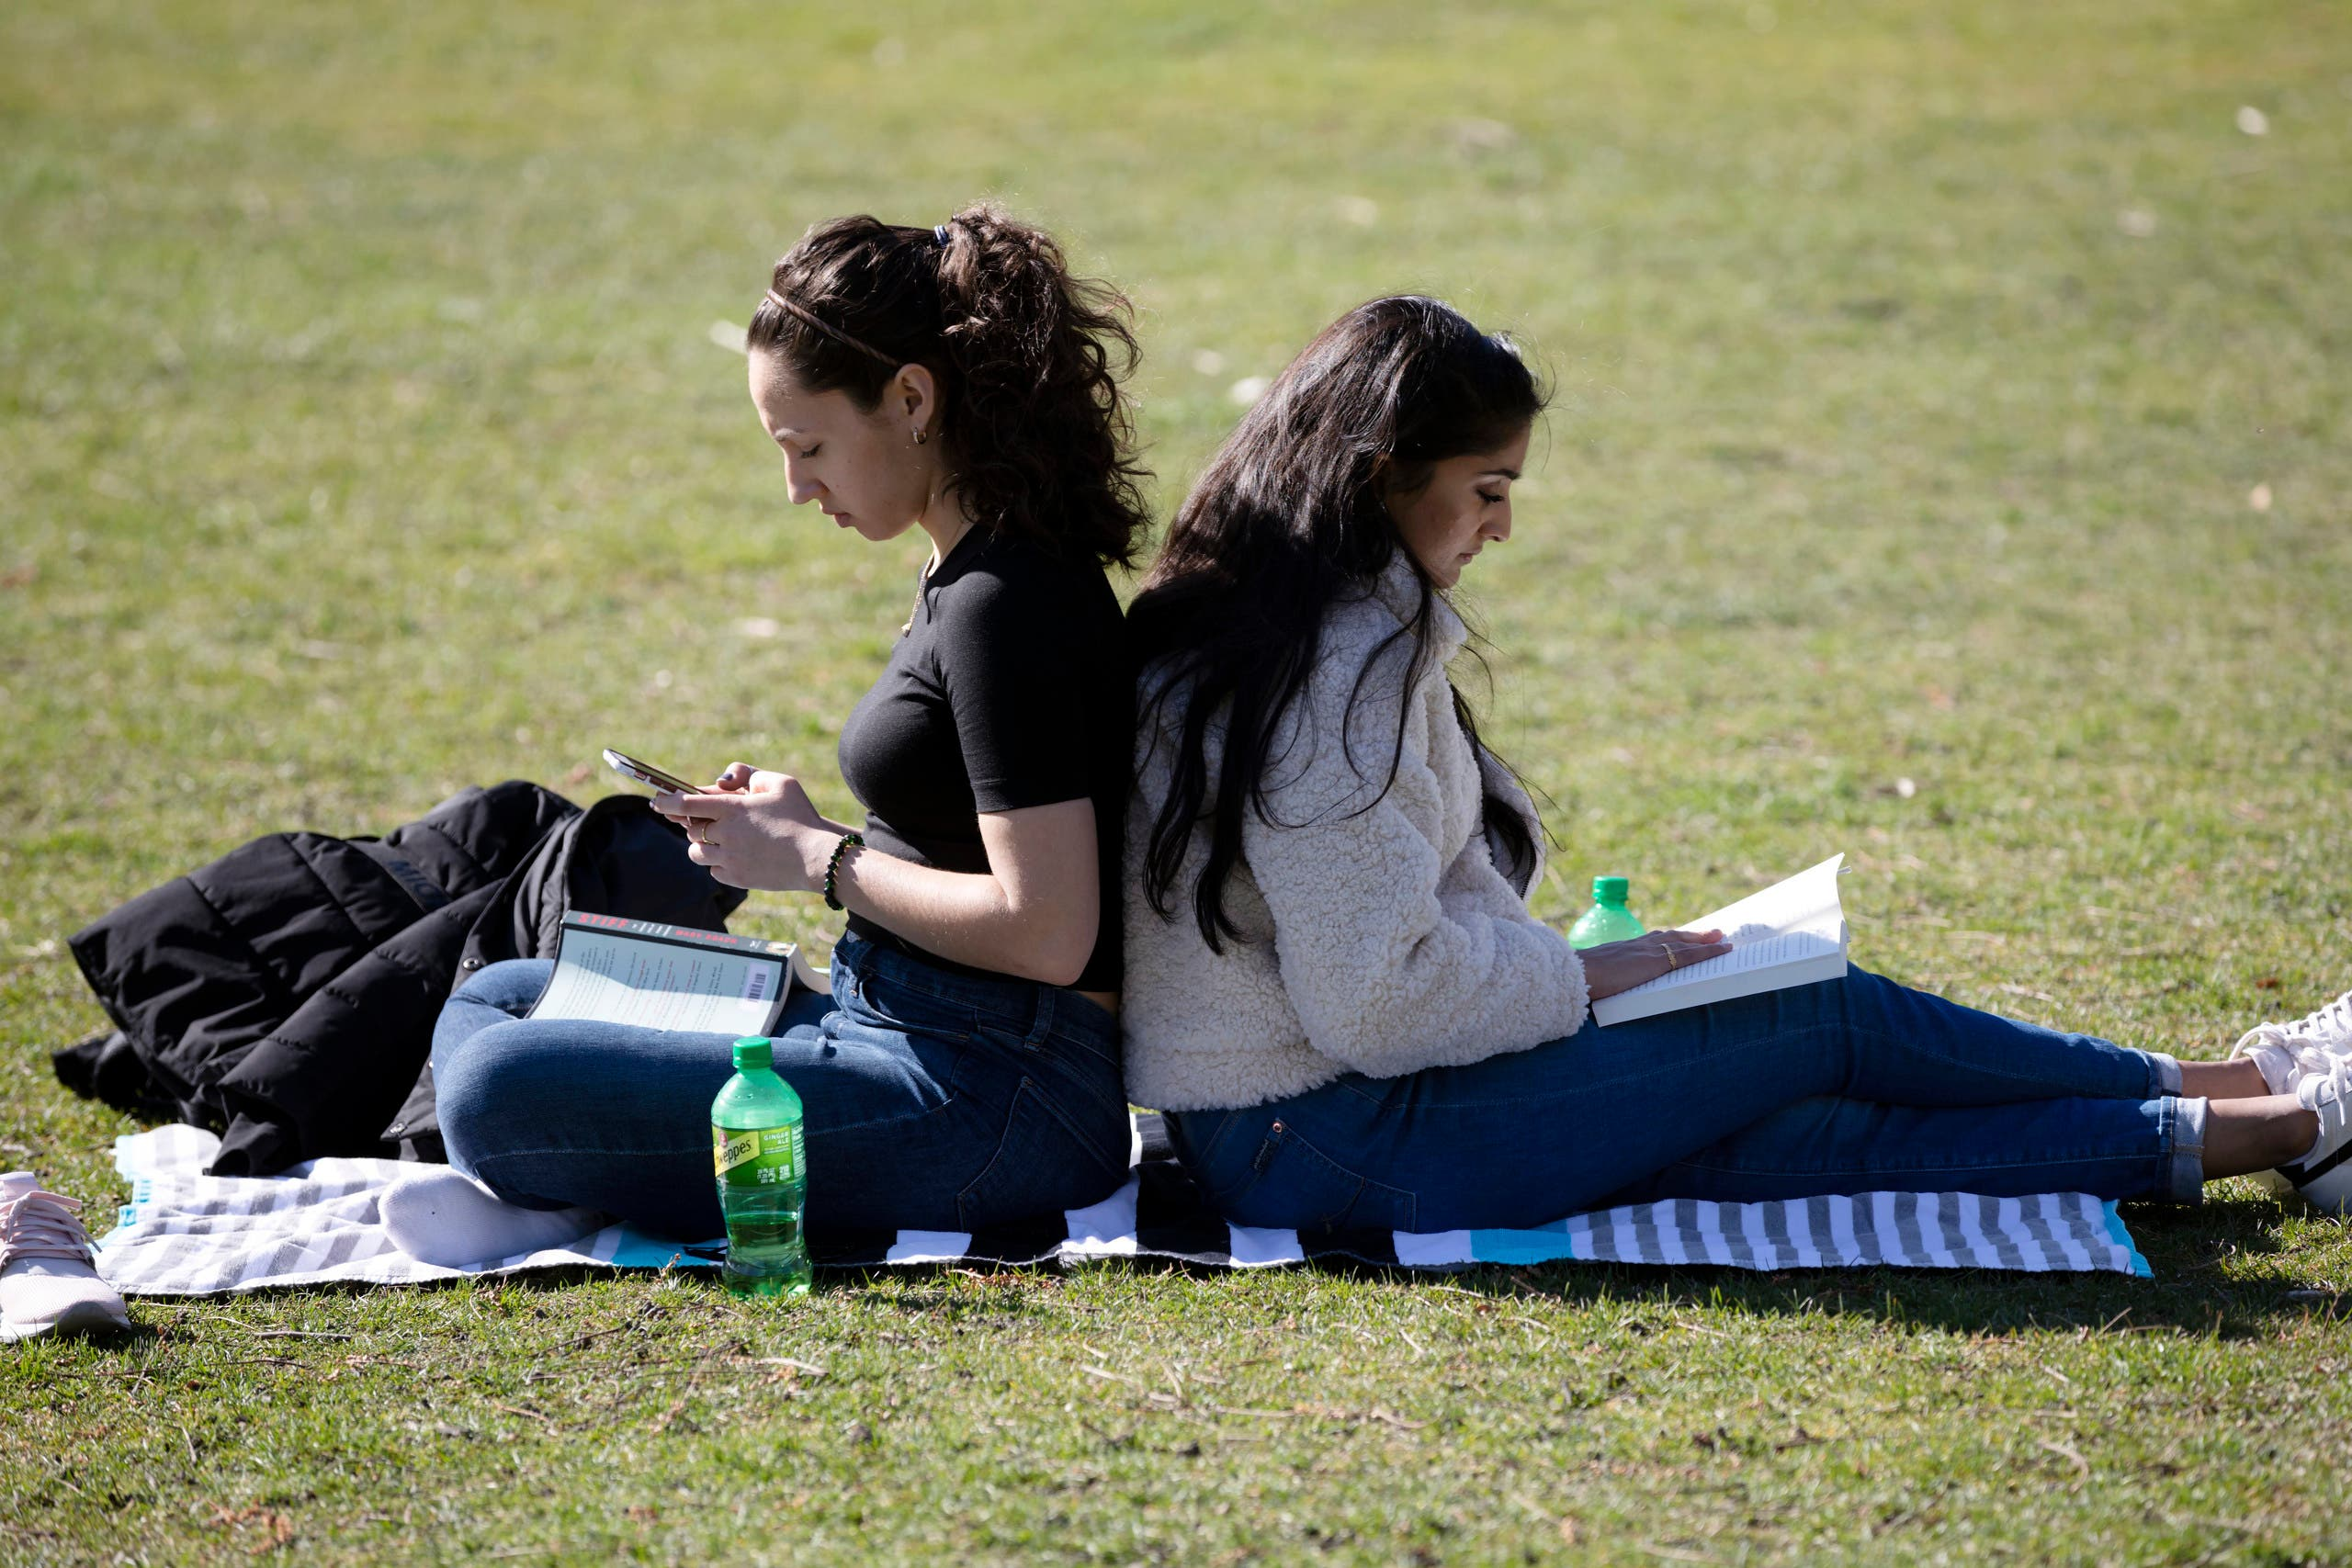 Letitia Klos, left, and her roommate Aesha Patel, both students at Boston University Dental School, spend time in The Public Garden in Boston, Friday, on March 27, 2020. (AP)